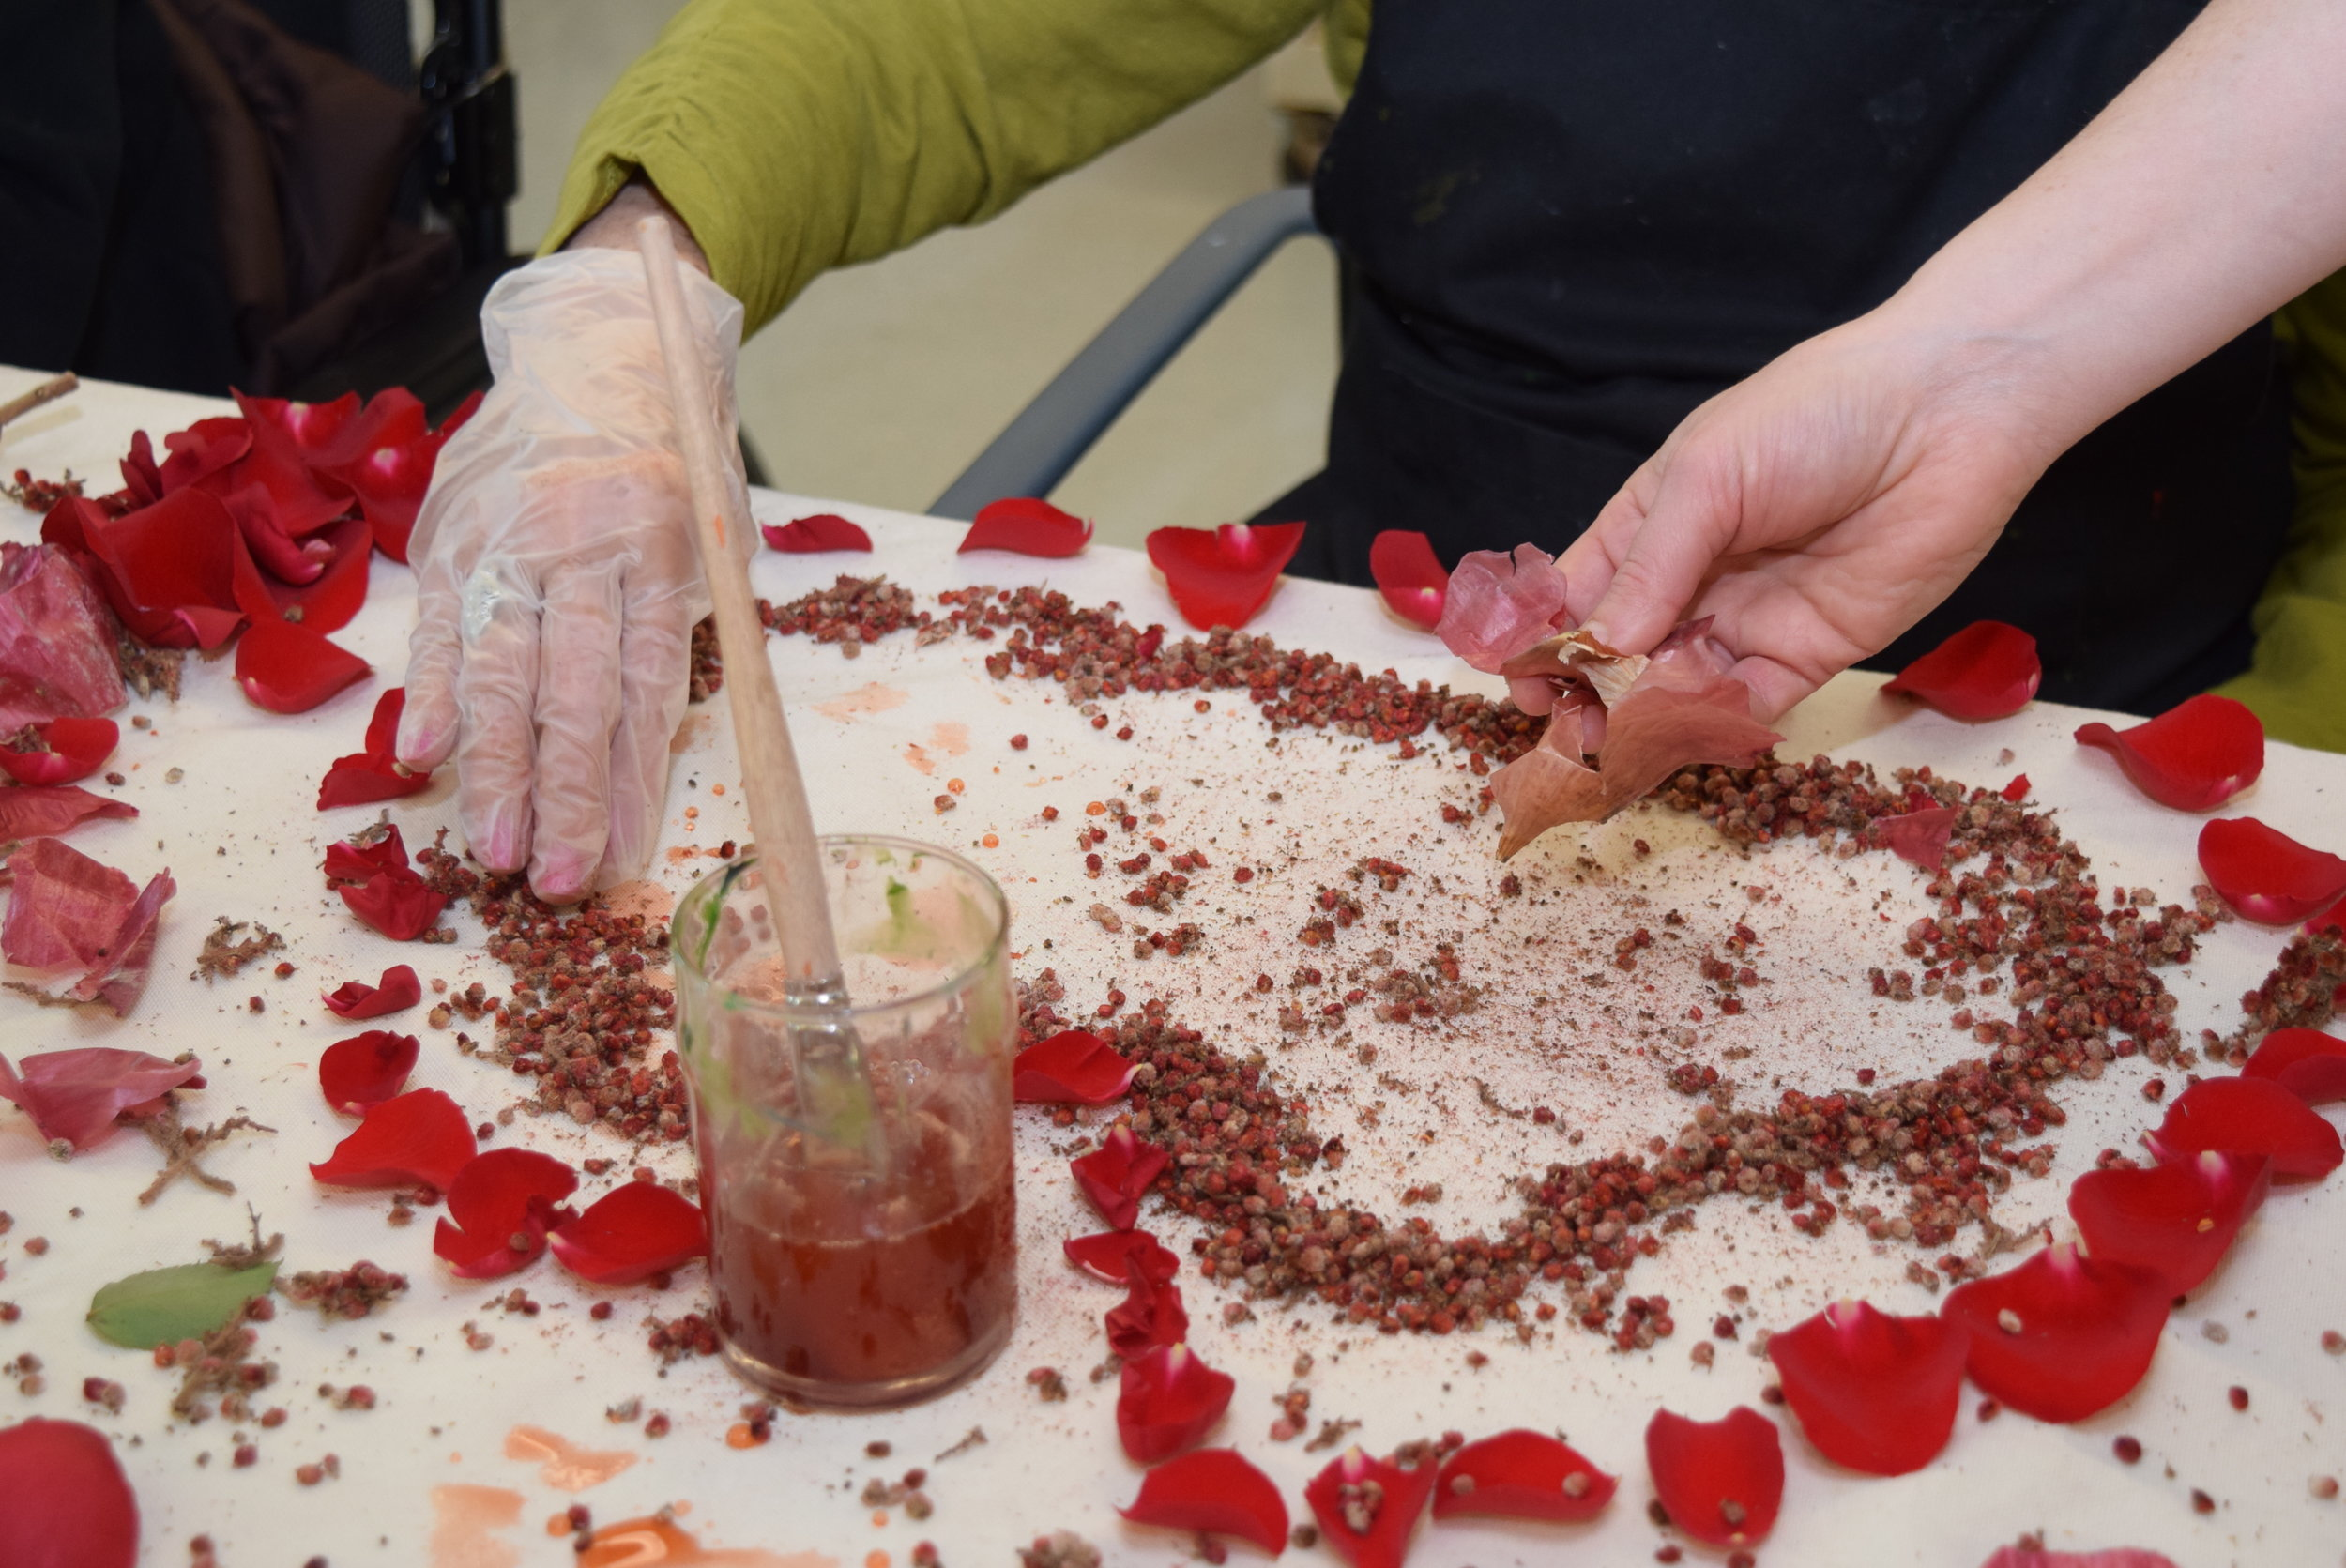 Eco-printing workshop with residents of the  Perley and Rideau Veterans' Health Centre  (Ottawa, On) under the guidance of Creative Arts Instructor Gillian King and Spiritual Health Practitioner Jessie Stephenson, in collaboration with Therapeutic Recreation Creative Arts - Horticultural Services and Support Services. 2019.